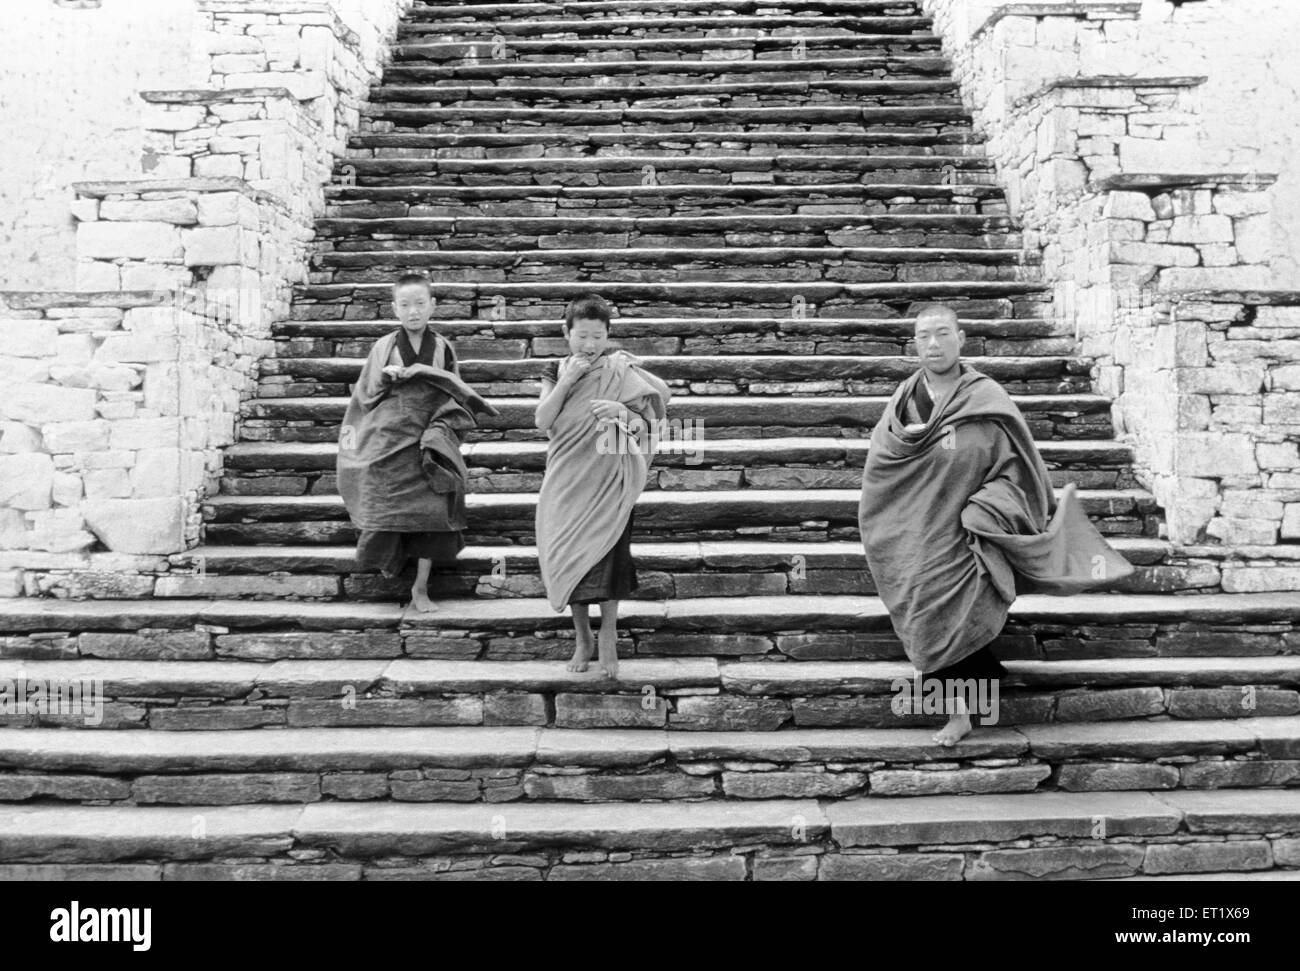 Young monks come down the steps of the ancient Dzong ; monastery at Paro ; Bhutan - Stock Image